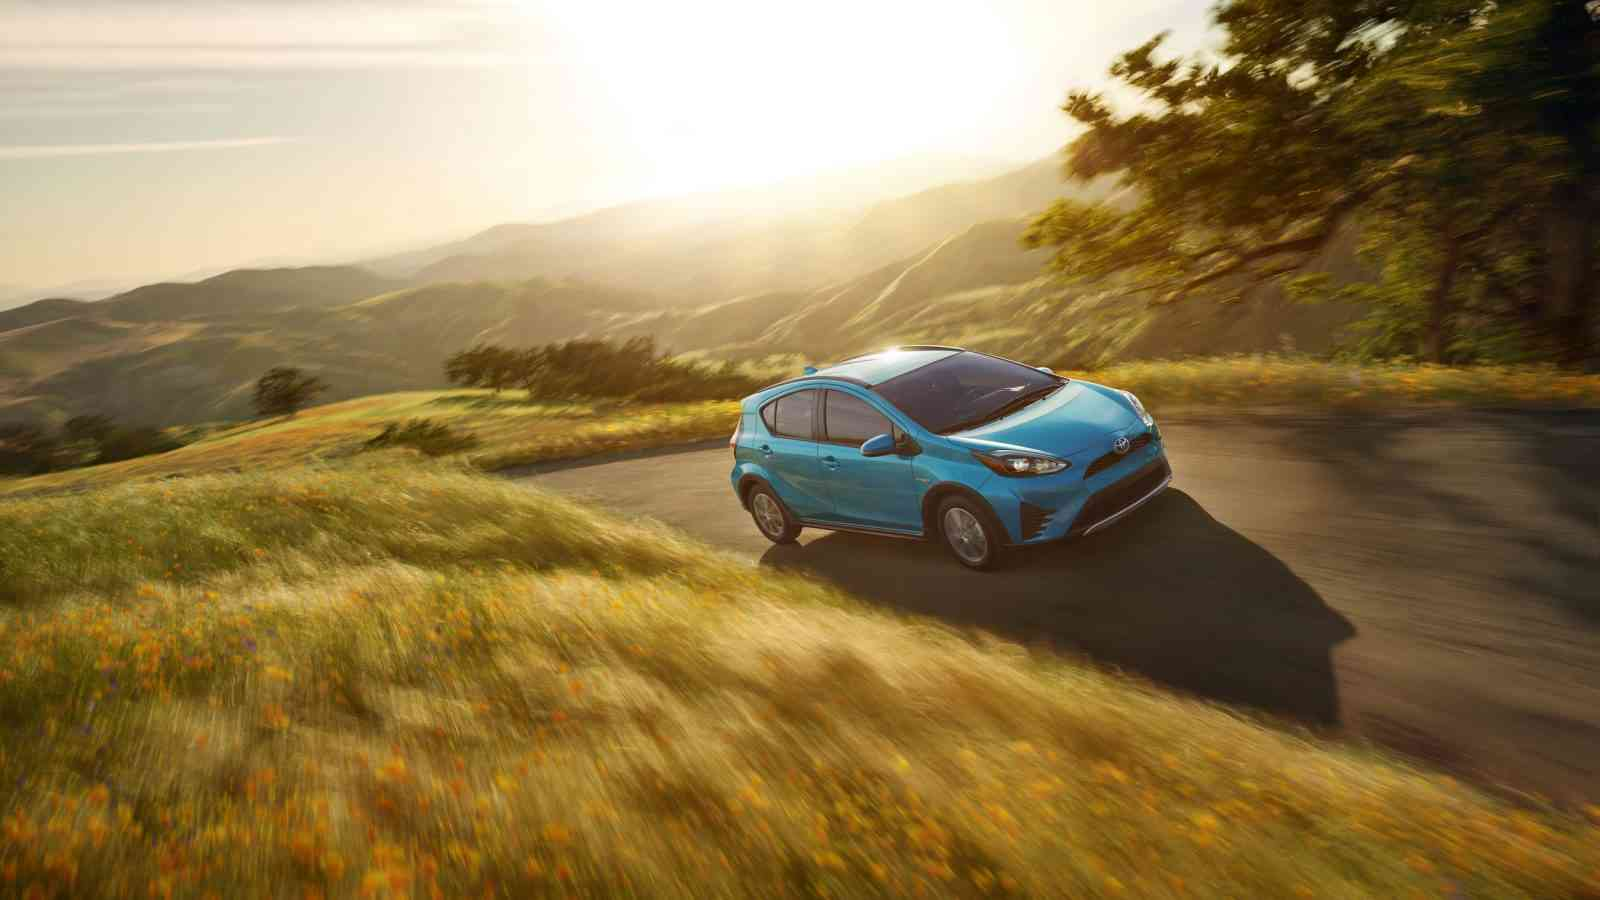 Toyota Prius C review- The review